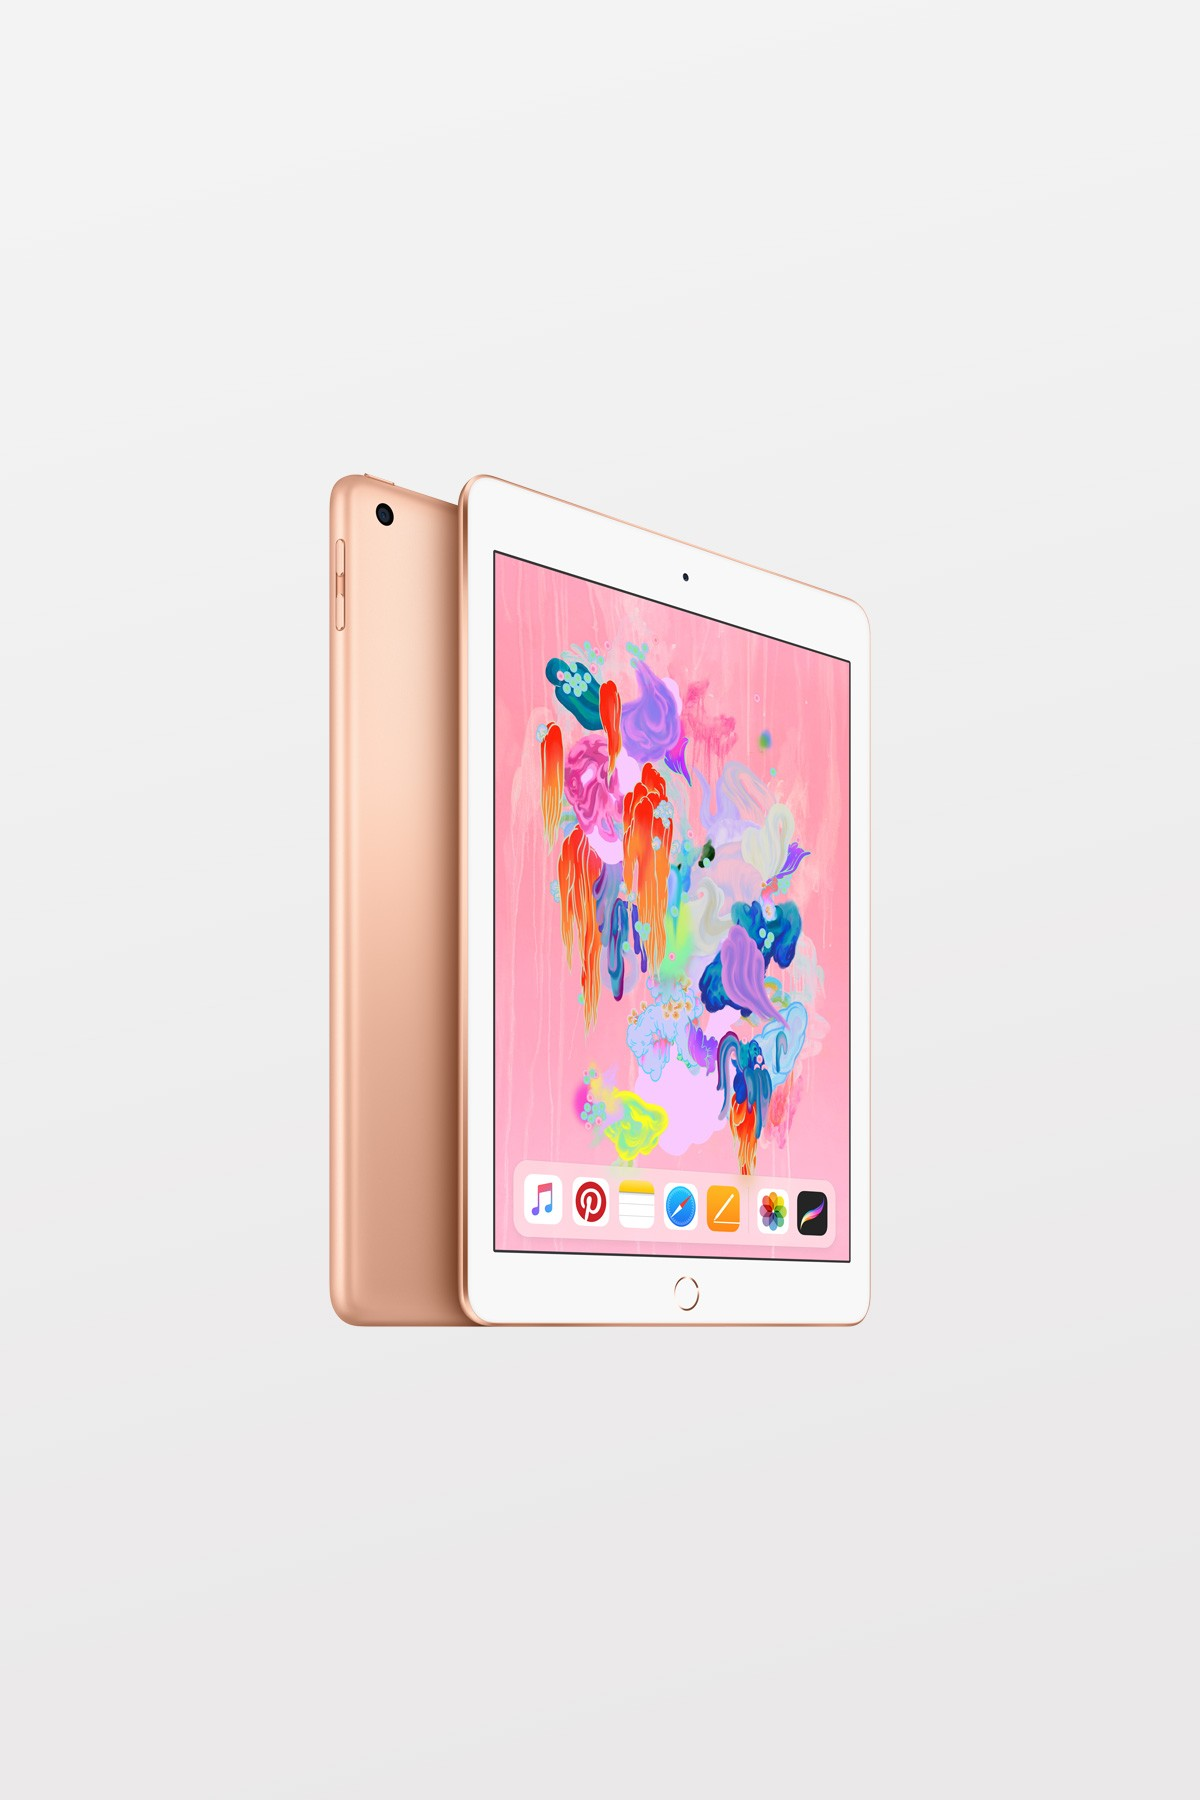 Apple iPad Wi-Fi + Cellular 128GB (6th gen) - Gold - Supports Apple Pencil